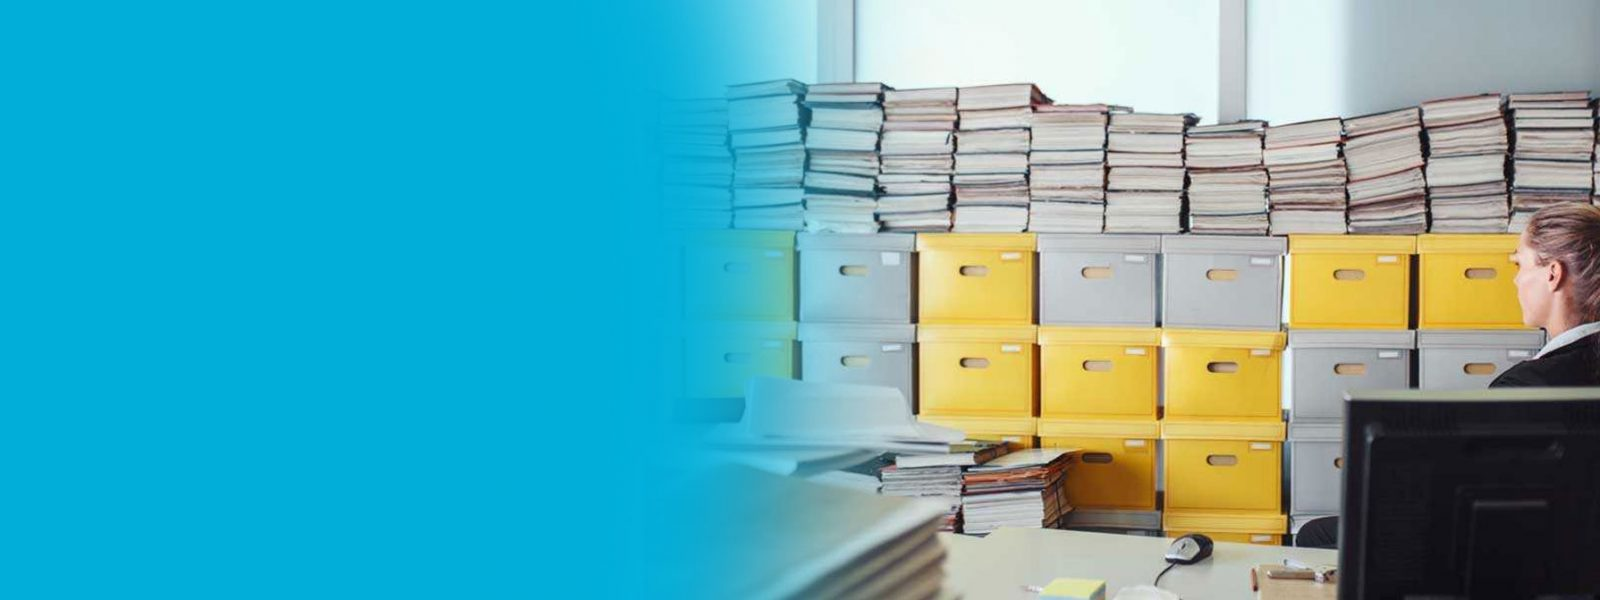 Business equipment and documents storage